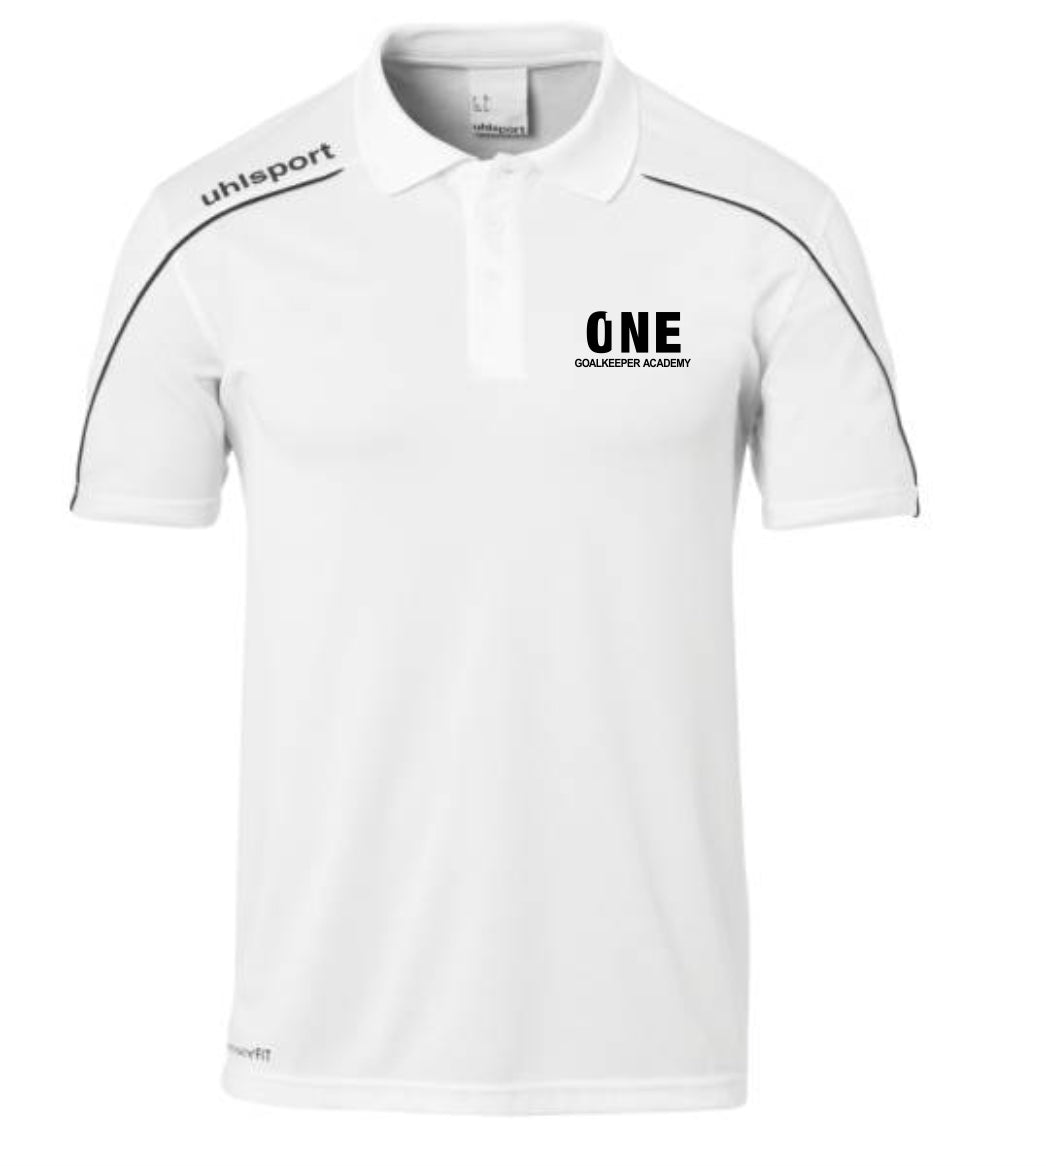 One Goalkeeper Academy Stream 22 Polo Shirt (White/Black)